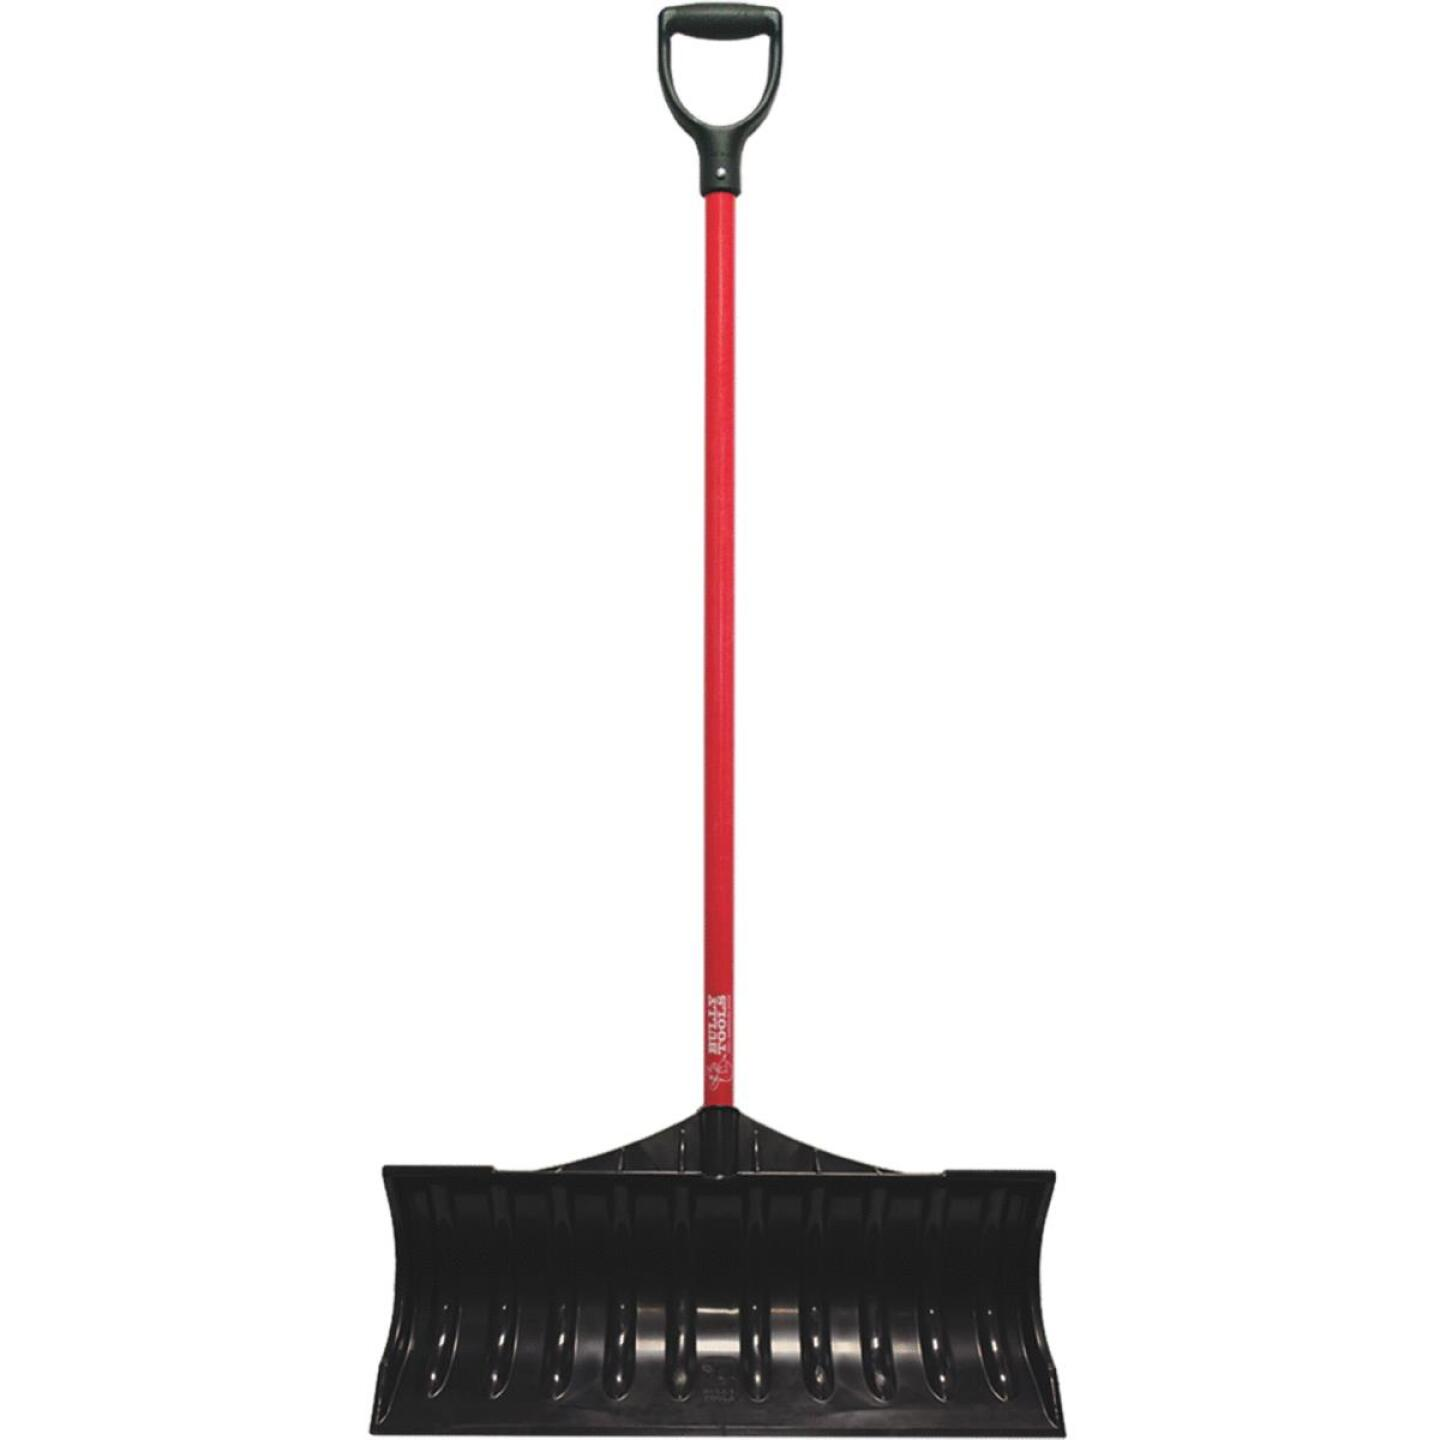 Bully Tools 27 In. Poly Snow Pusher with 46.5 In. Fiberglass Handle Image 1